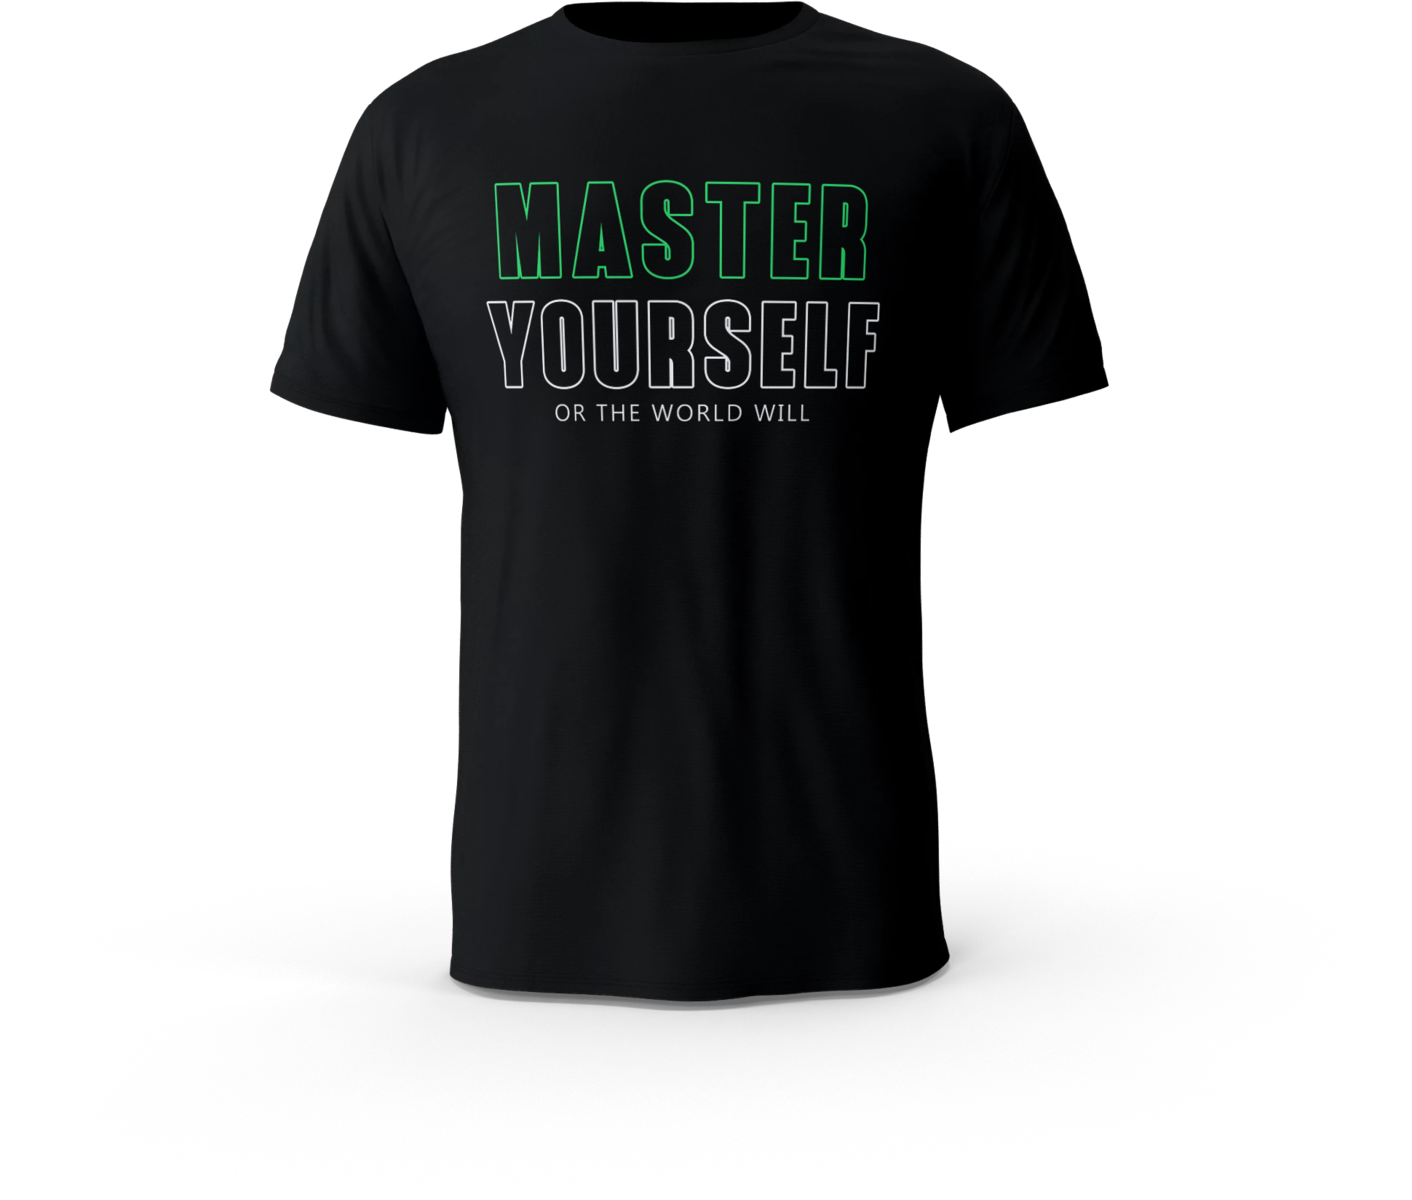 MASTER YOURSELF OR THE WORLD WILL